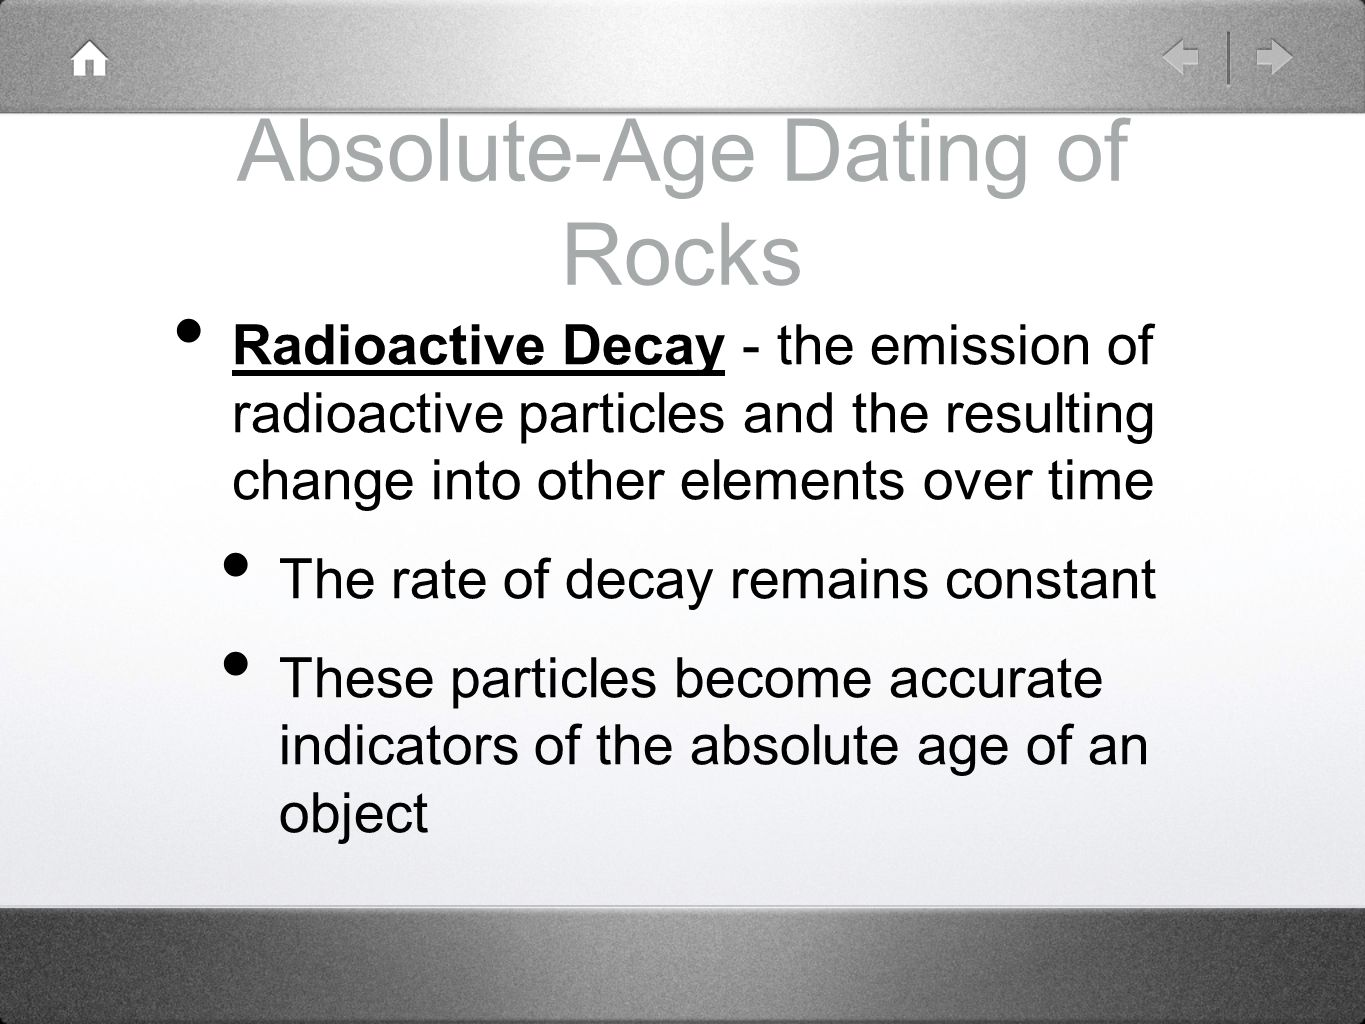 2. Absolute age dating